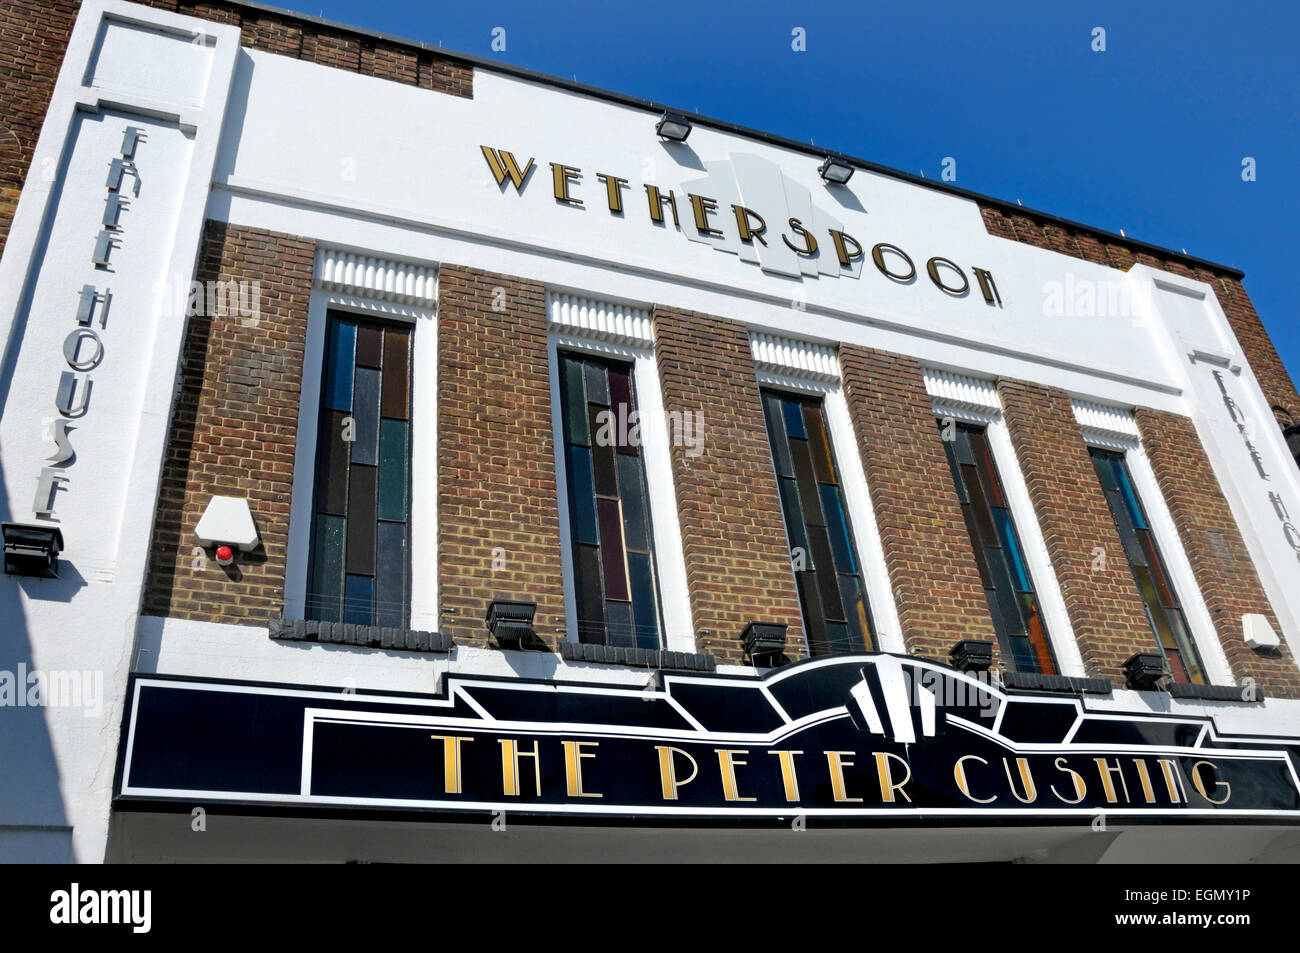 Whitstable, Kent, England, UK. Wetherspoons pub 'The Peter Cushing' in the former Oxford Cinema (Art Deco - Stock Image